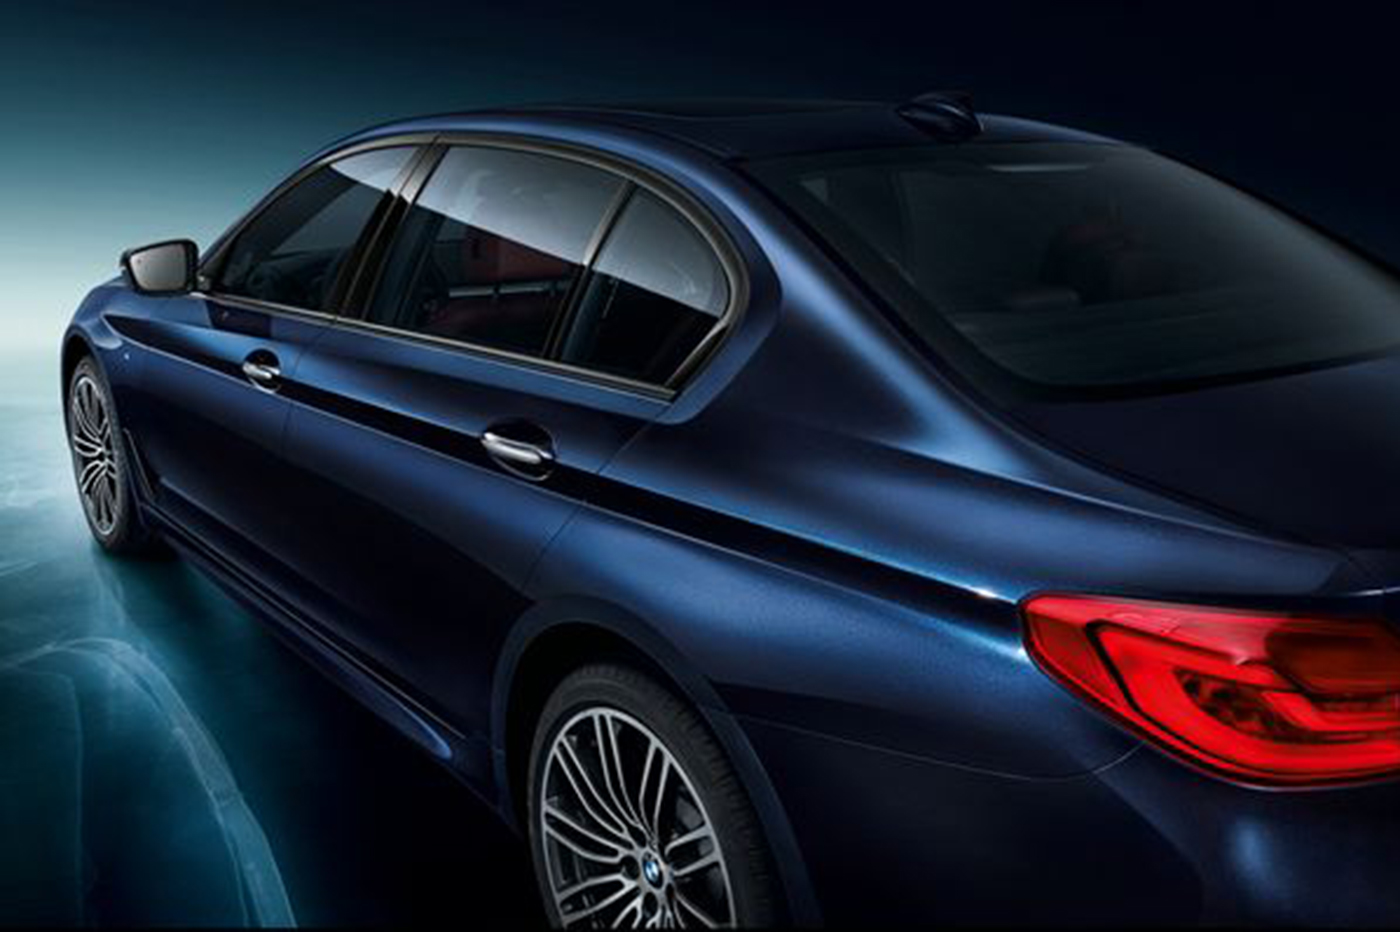 bmw-5-series-li-china-2.jpg